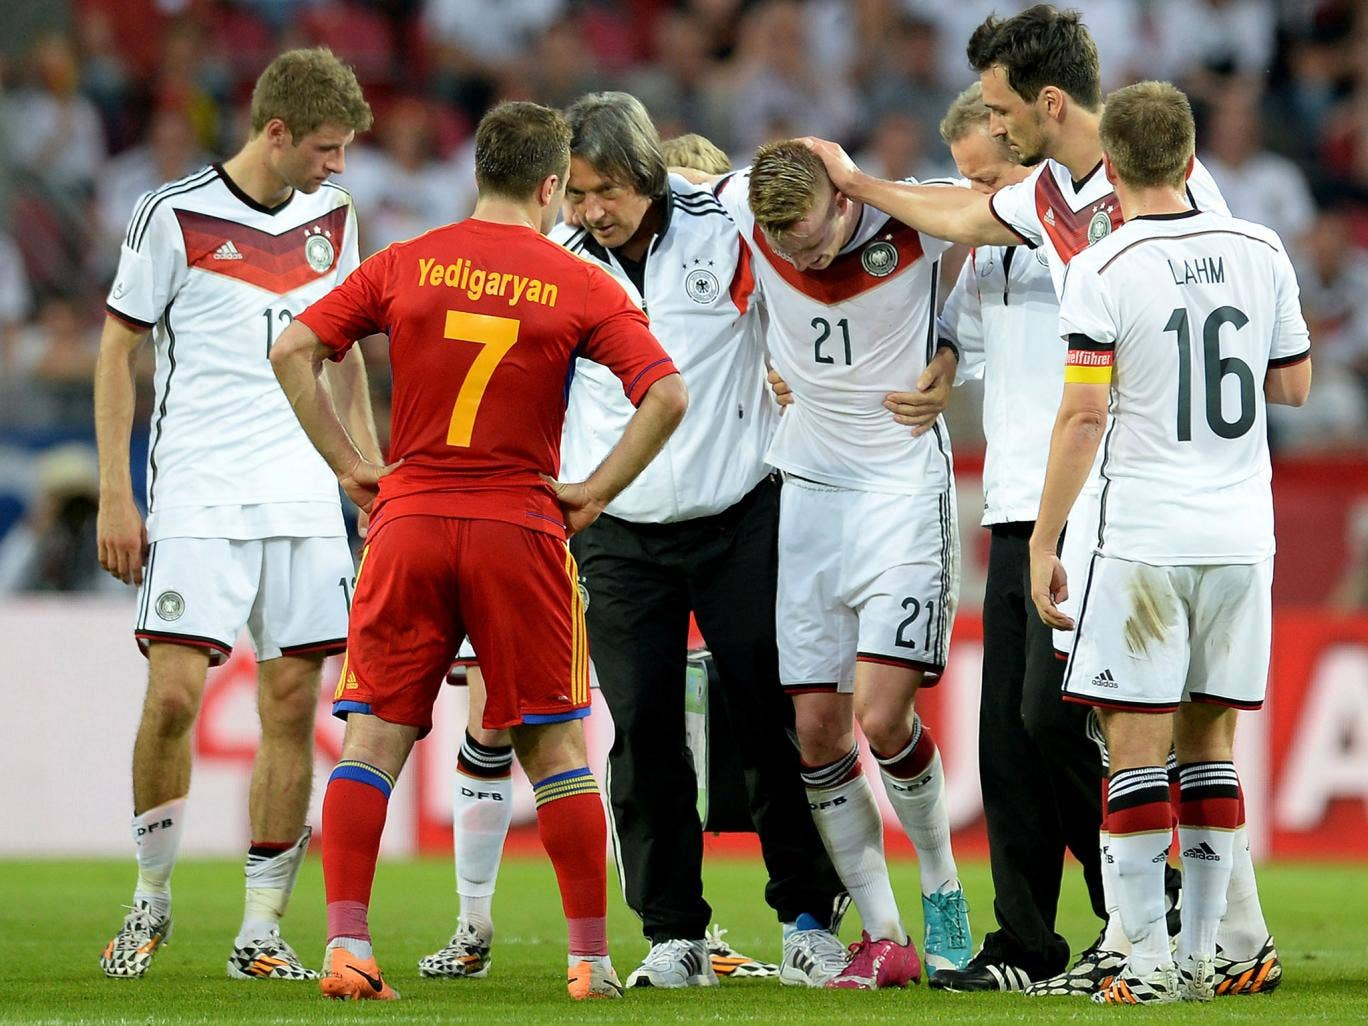 Marco Reus is helped from the pitch after suffering an ankle injury in the friendly between Germany and Armenia